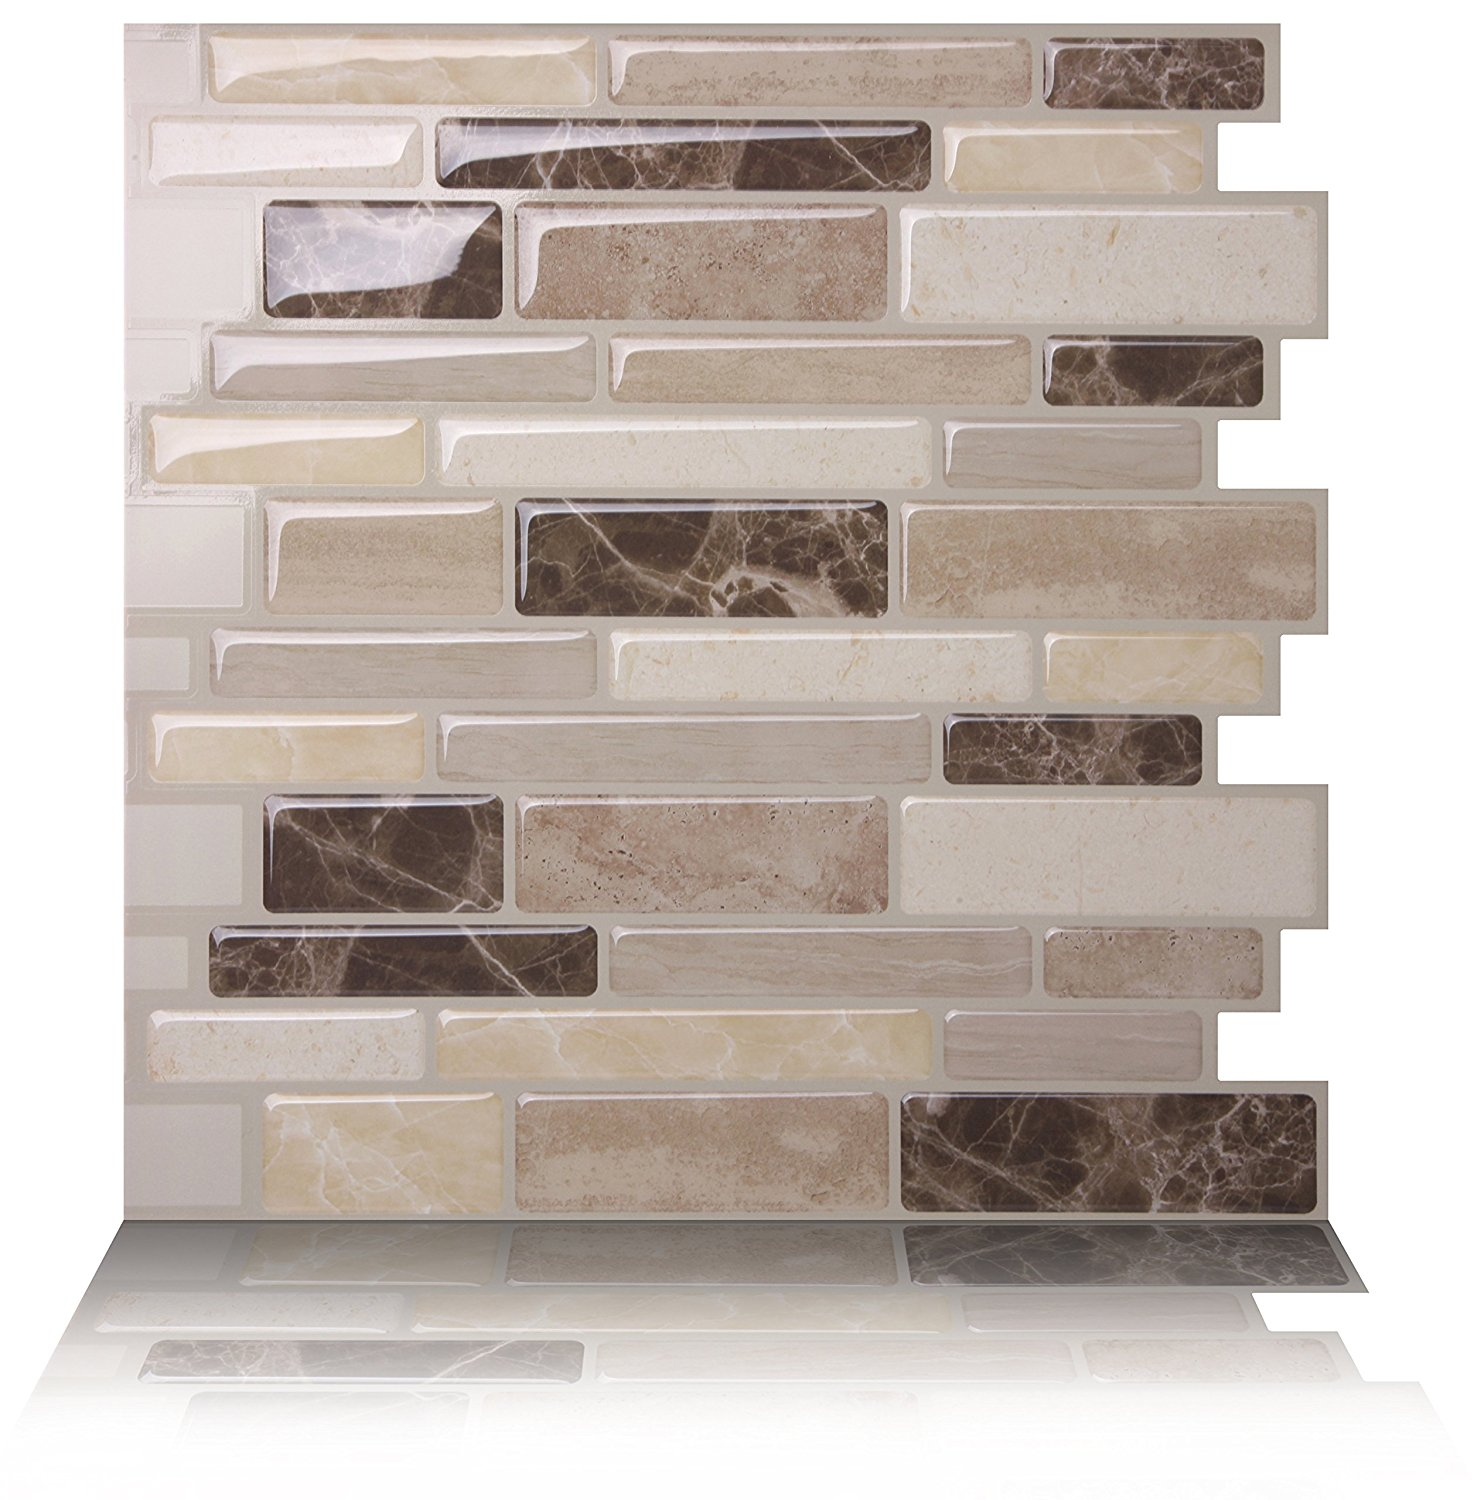 Tic Tac Tiles - Anti-mold Peel and Stick Wall Tile in Polito Bella (5-Tiles)